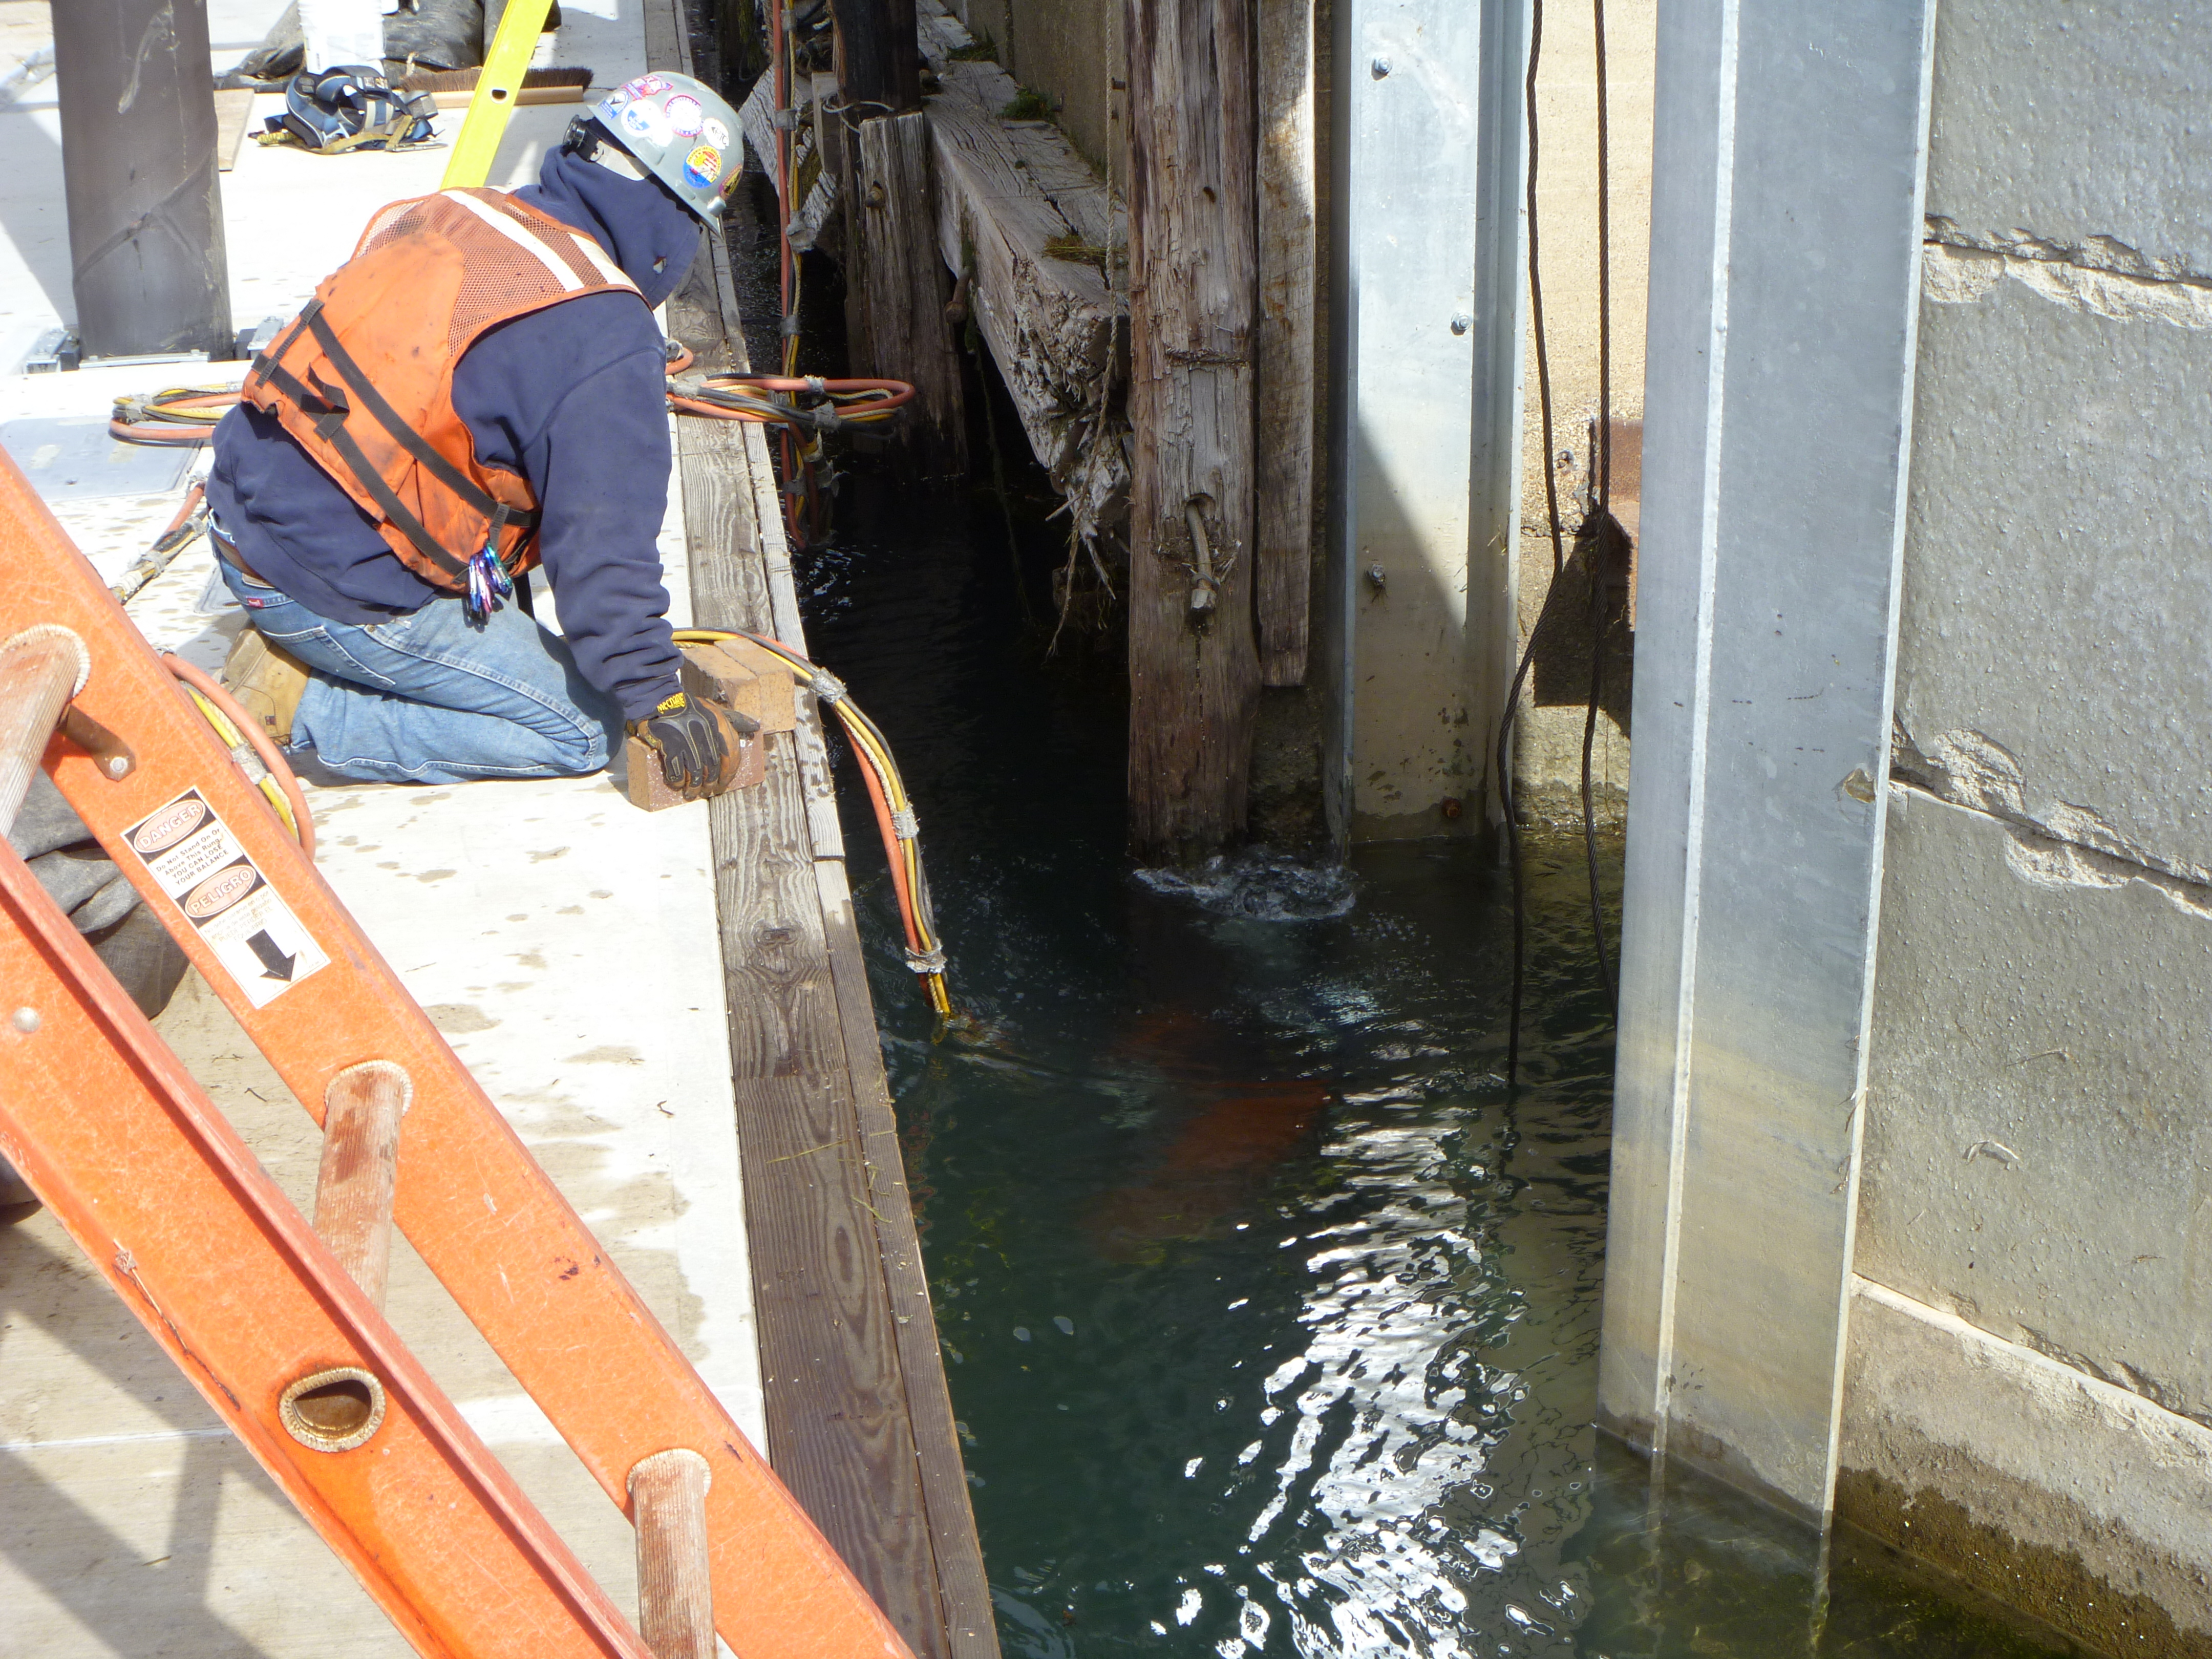 diver working on bulkhead wall 2